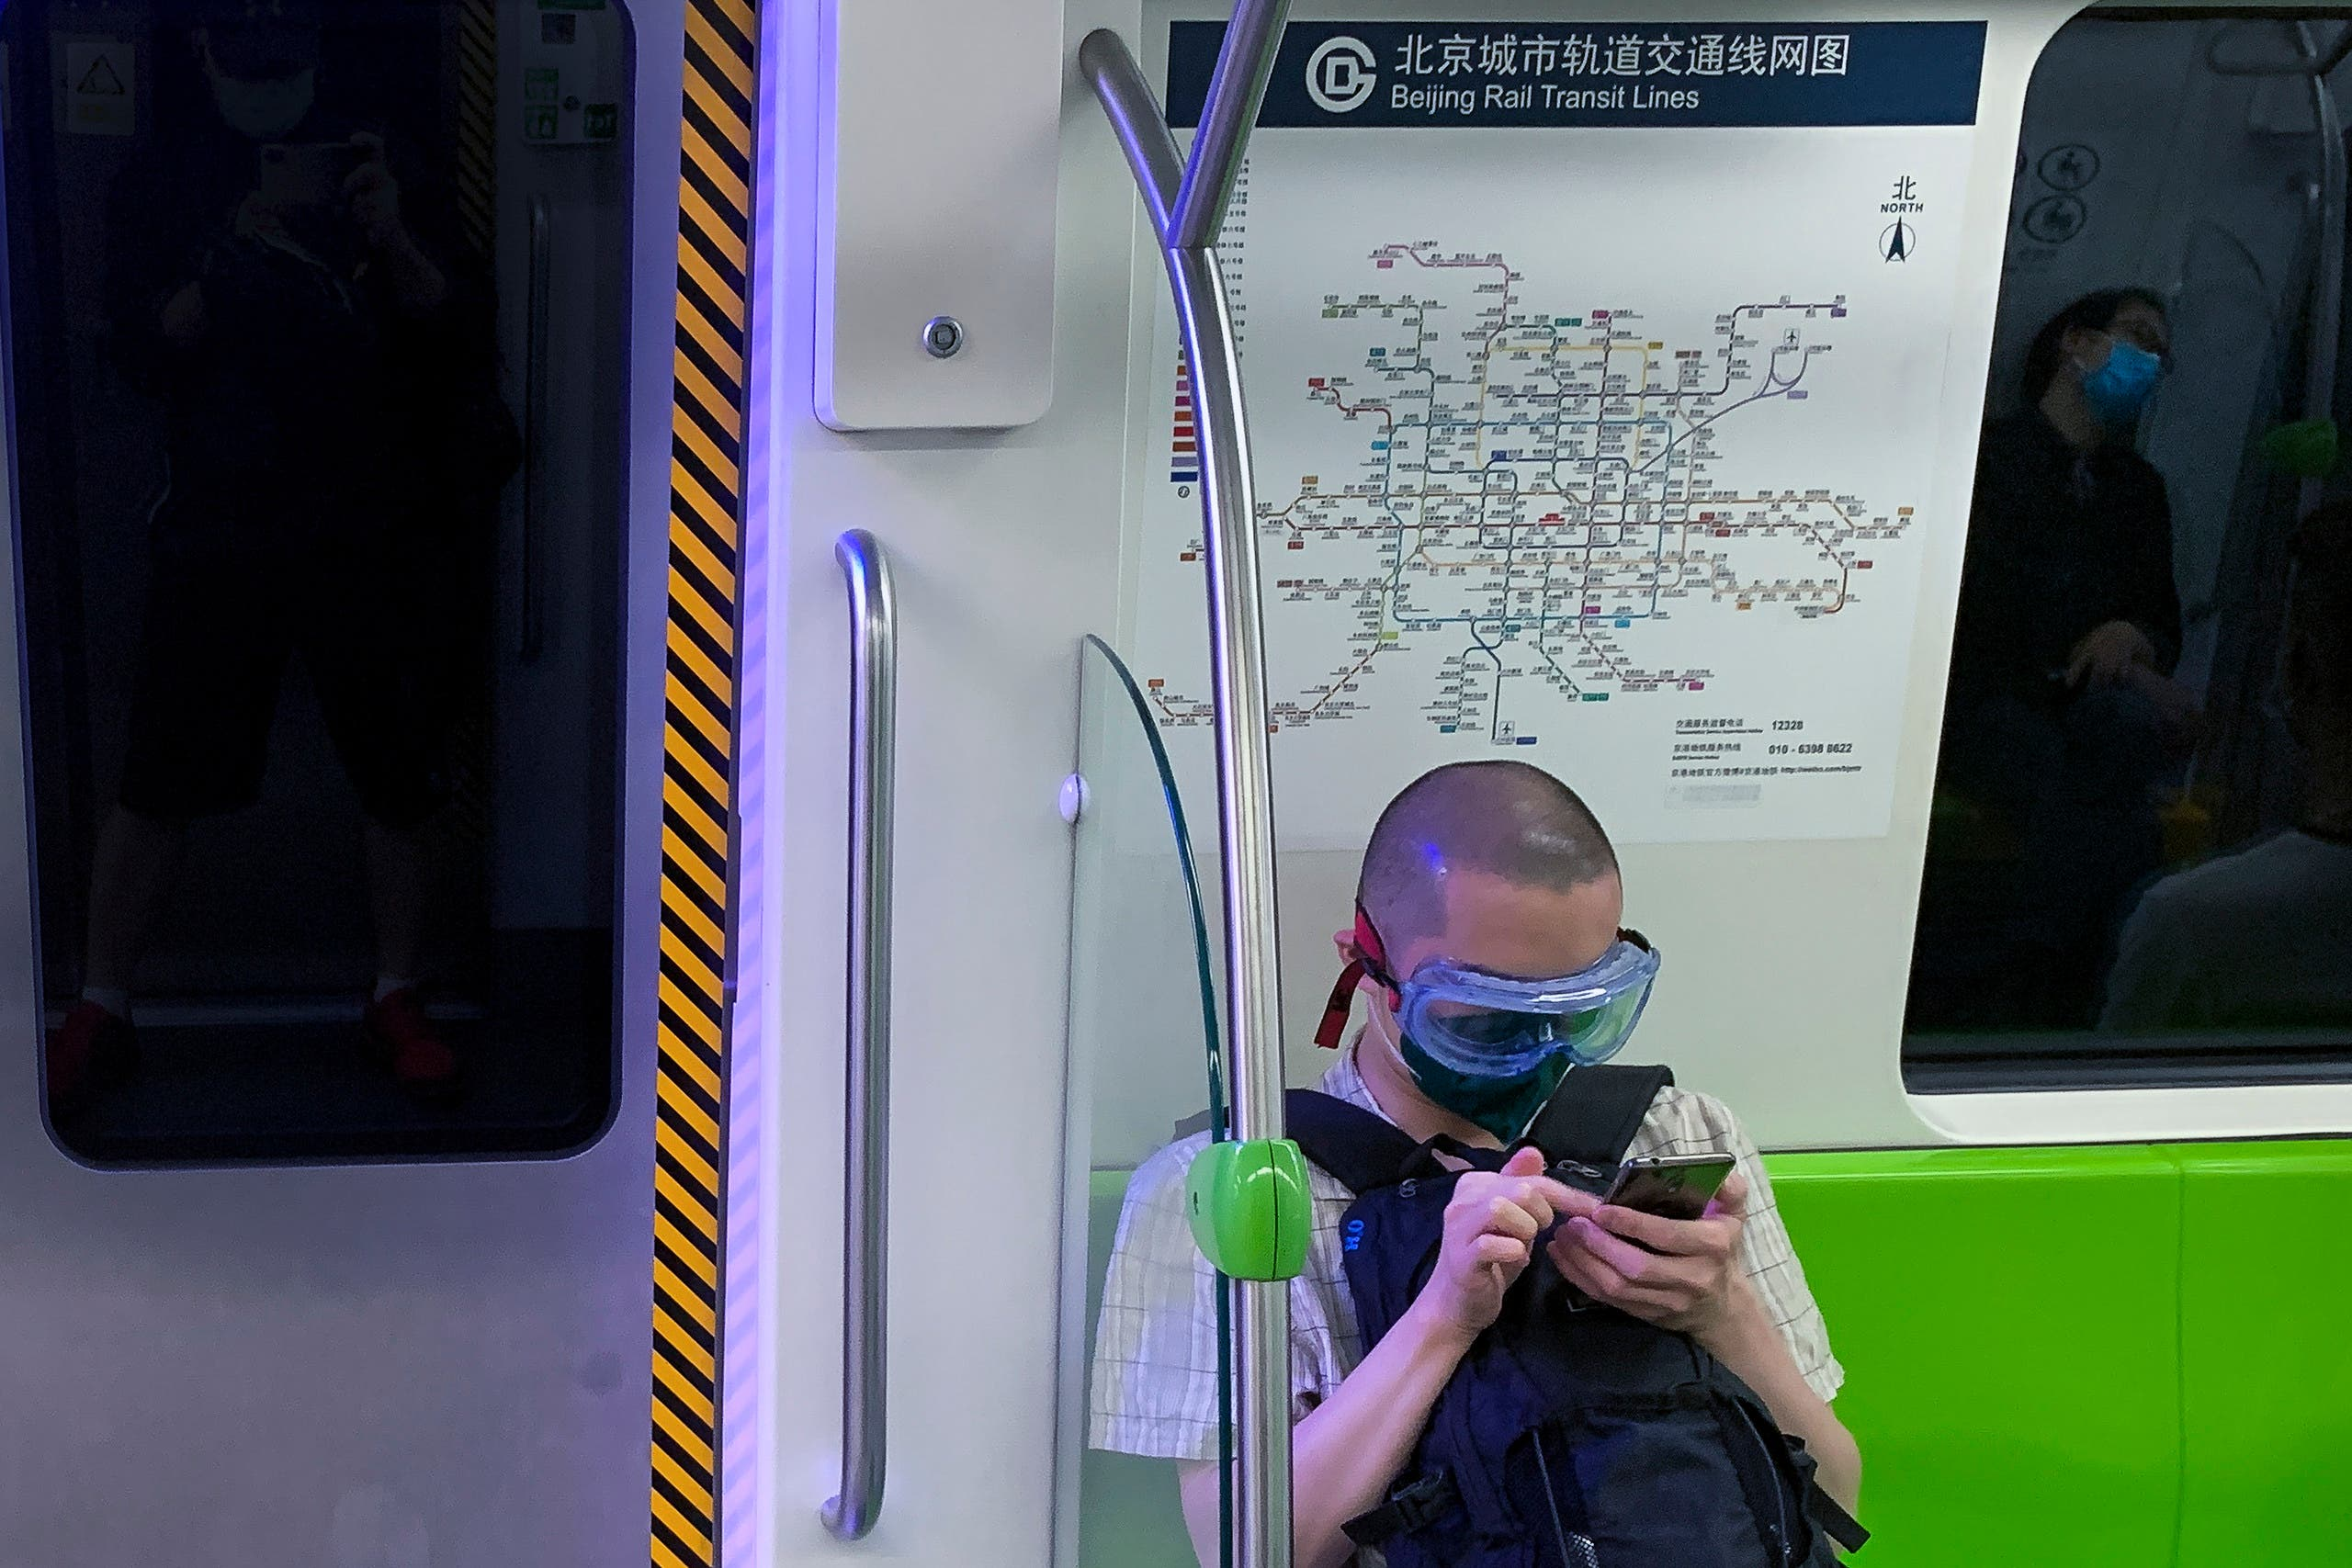 A commuter wearing a goggle and protective face mask to help curb the spread of the new coronavirus sits on the seat of a subway train in Beijing on June 16, 2020. (AP)